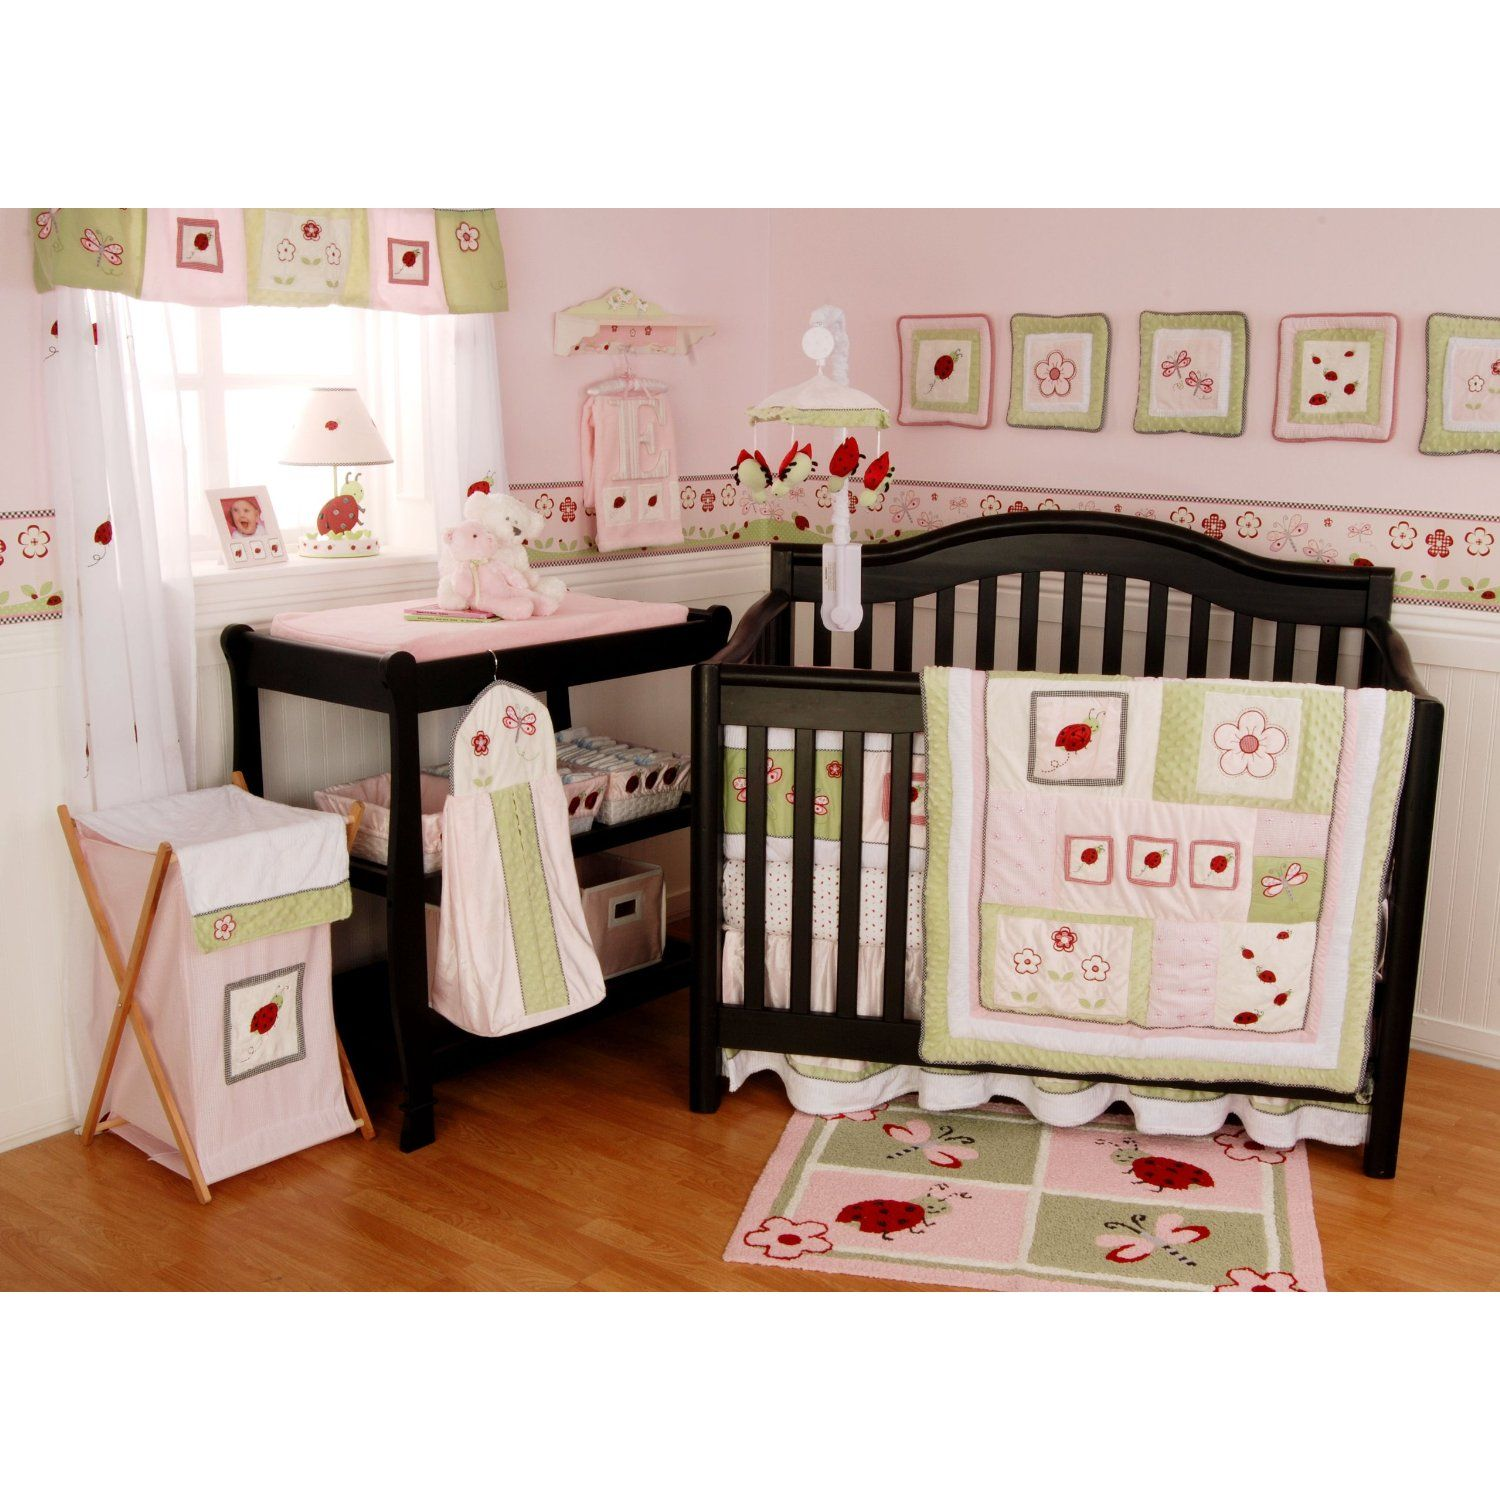 Baby Girl Nursery Themes Ladybugs With Images Crib Bedding Girl Girl Crib Bedding Sets Baby Crib Sets